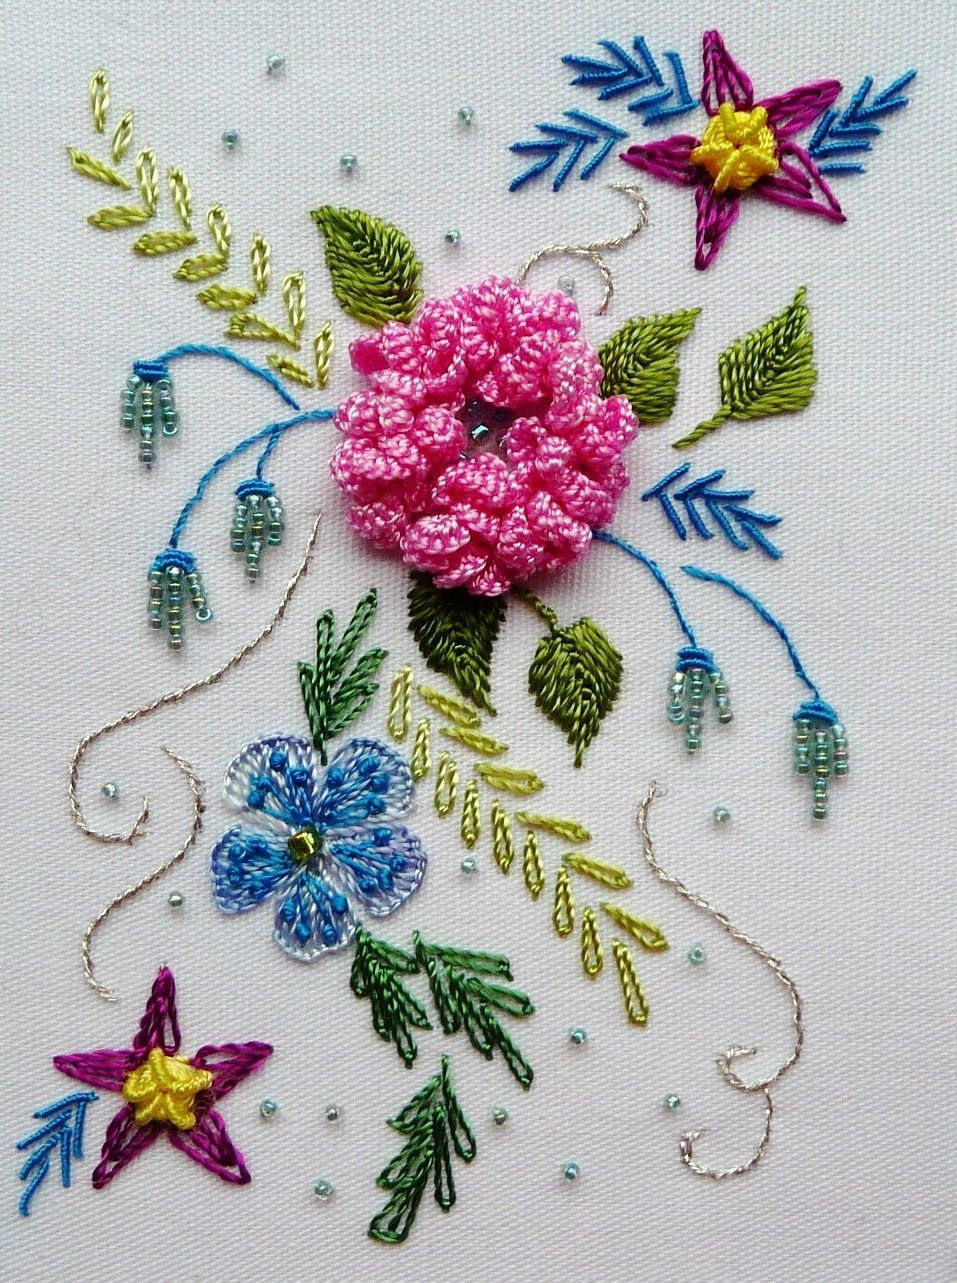 Ribbon embroidery bedspread designs - Brazilian Embroidery Bird Patterns Designs More Cascade Rose This Is An Intermediate